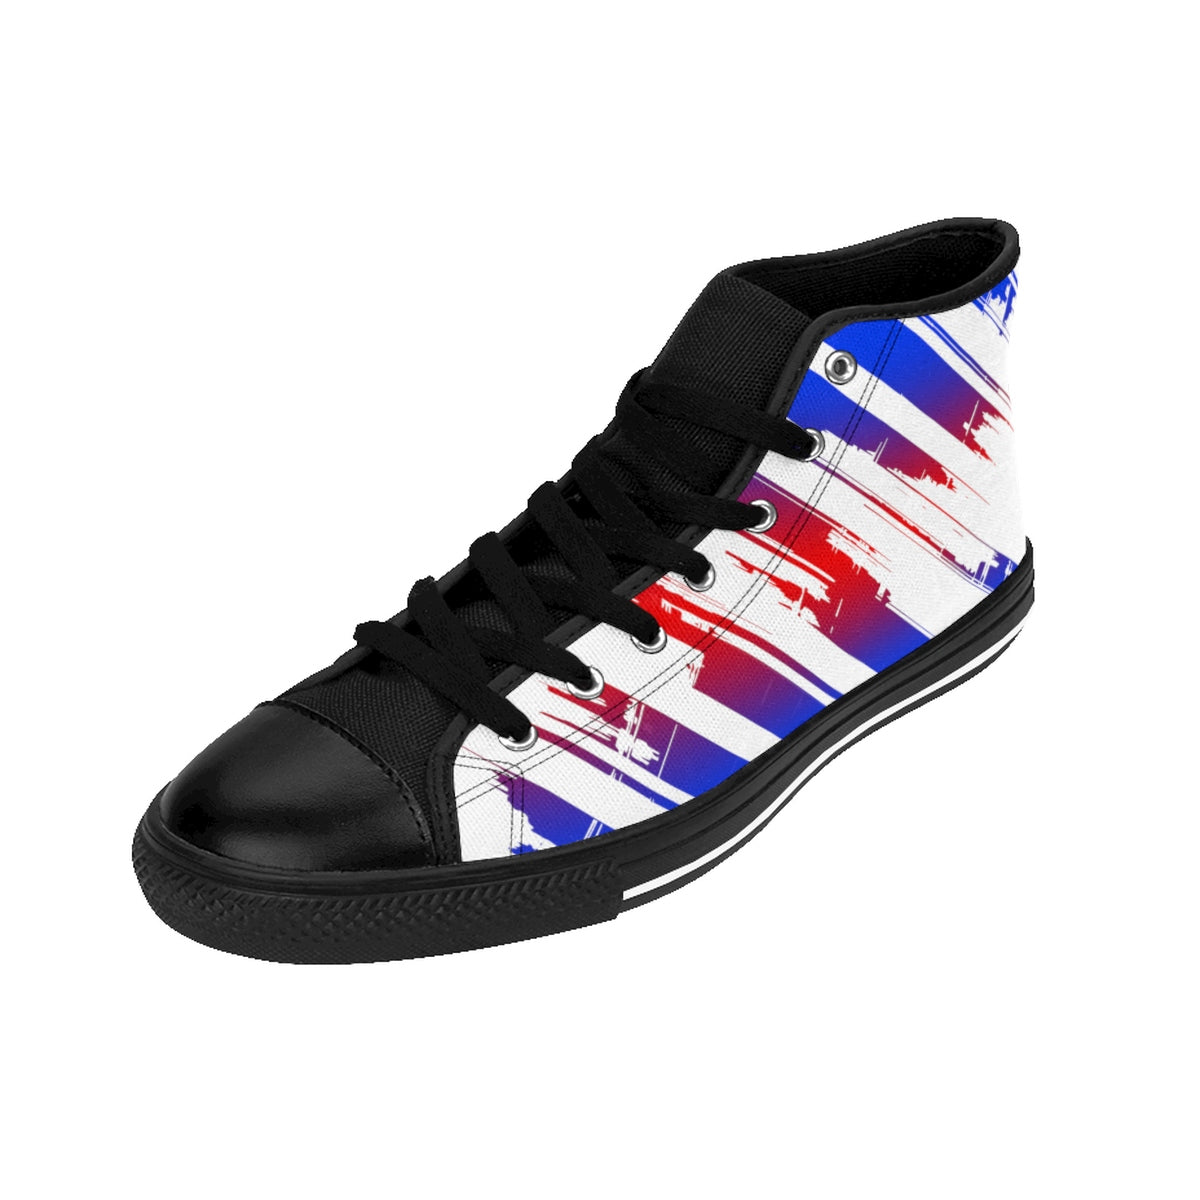 The Edge Of Insanity / Blue & Red / Men's High-top Sneakers